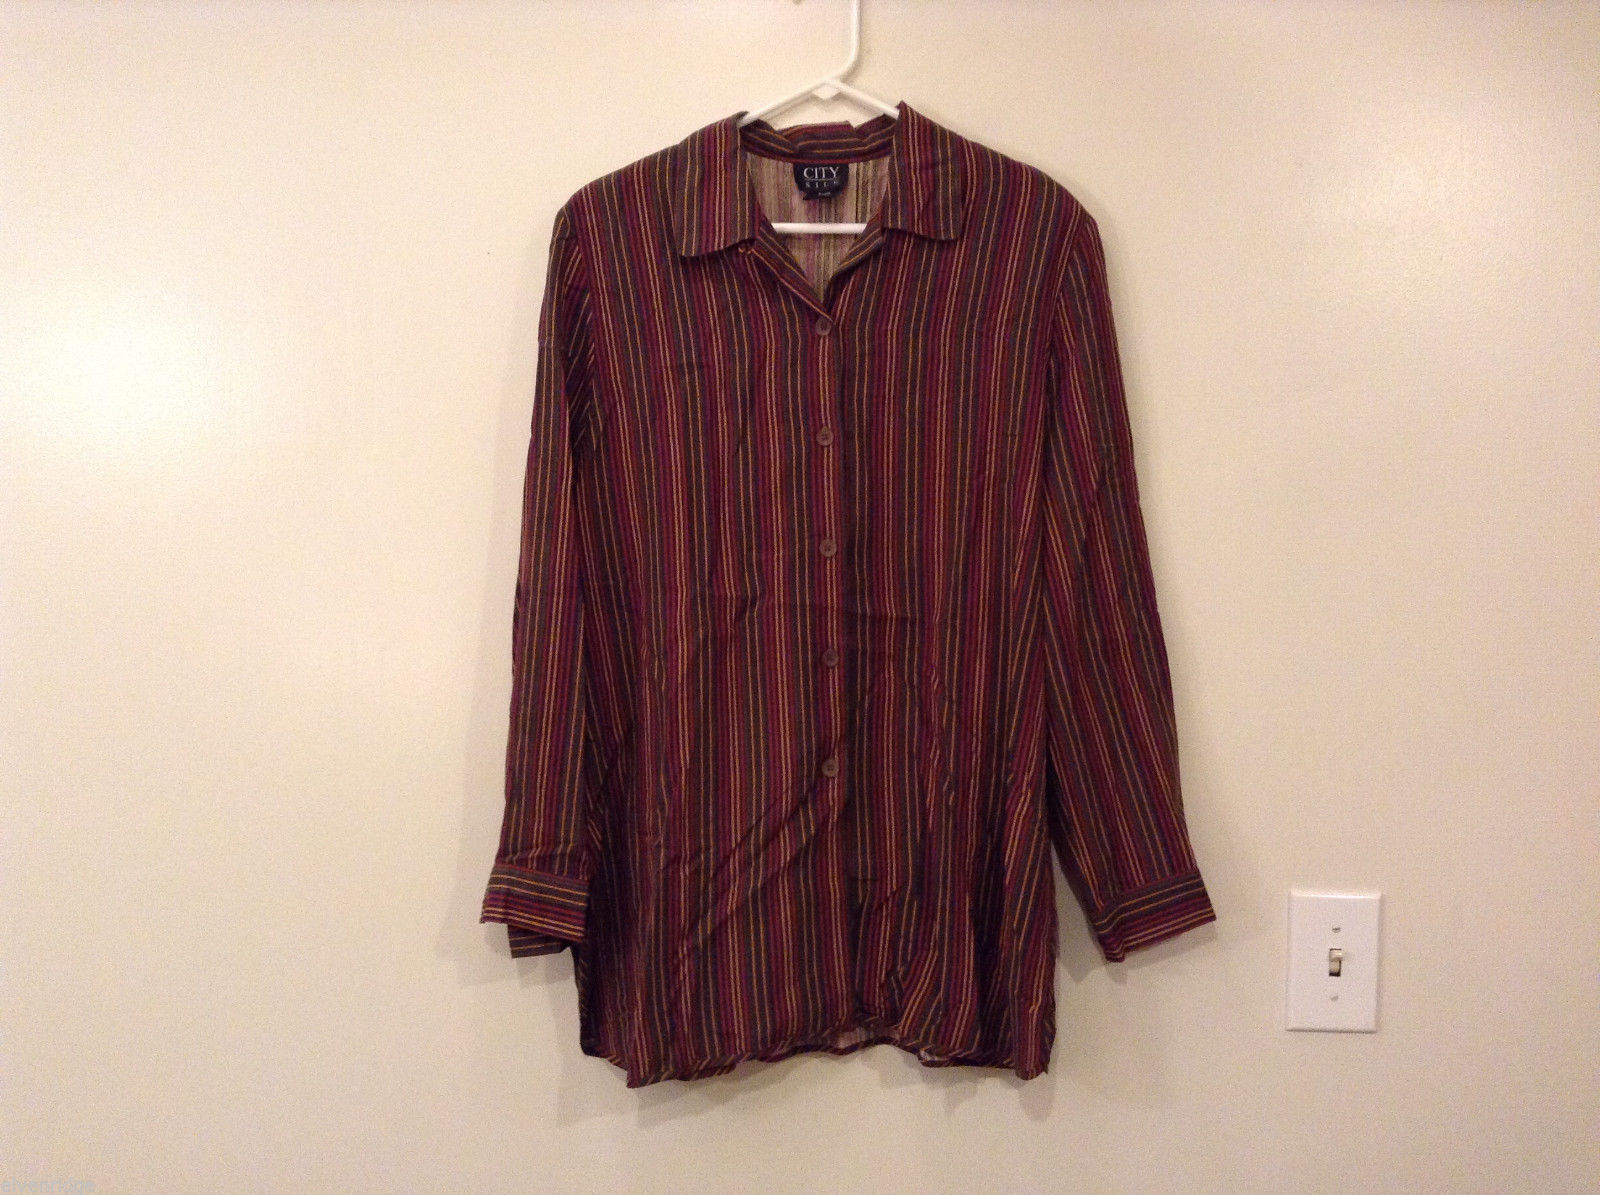 City Silk Women Size L 100% Silk Blouse Top Shirt Button-Down Striped 70s Colors